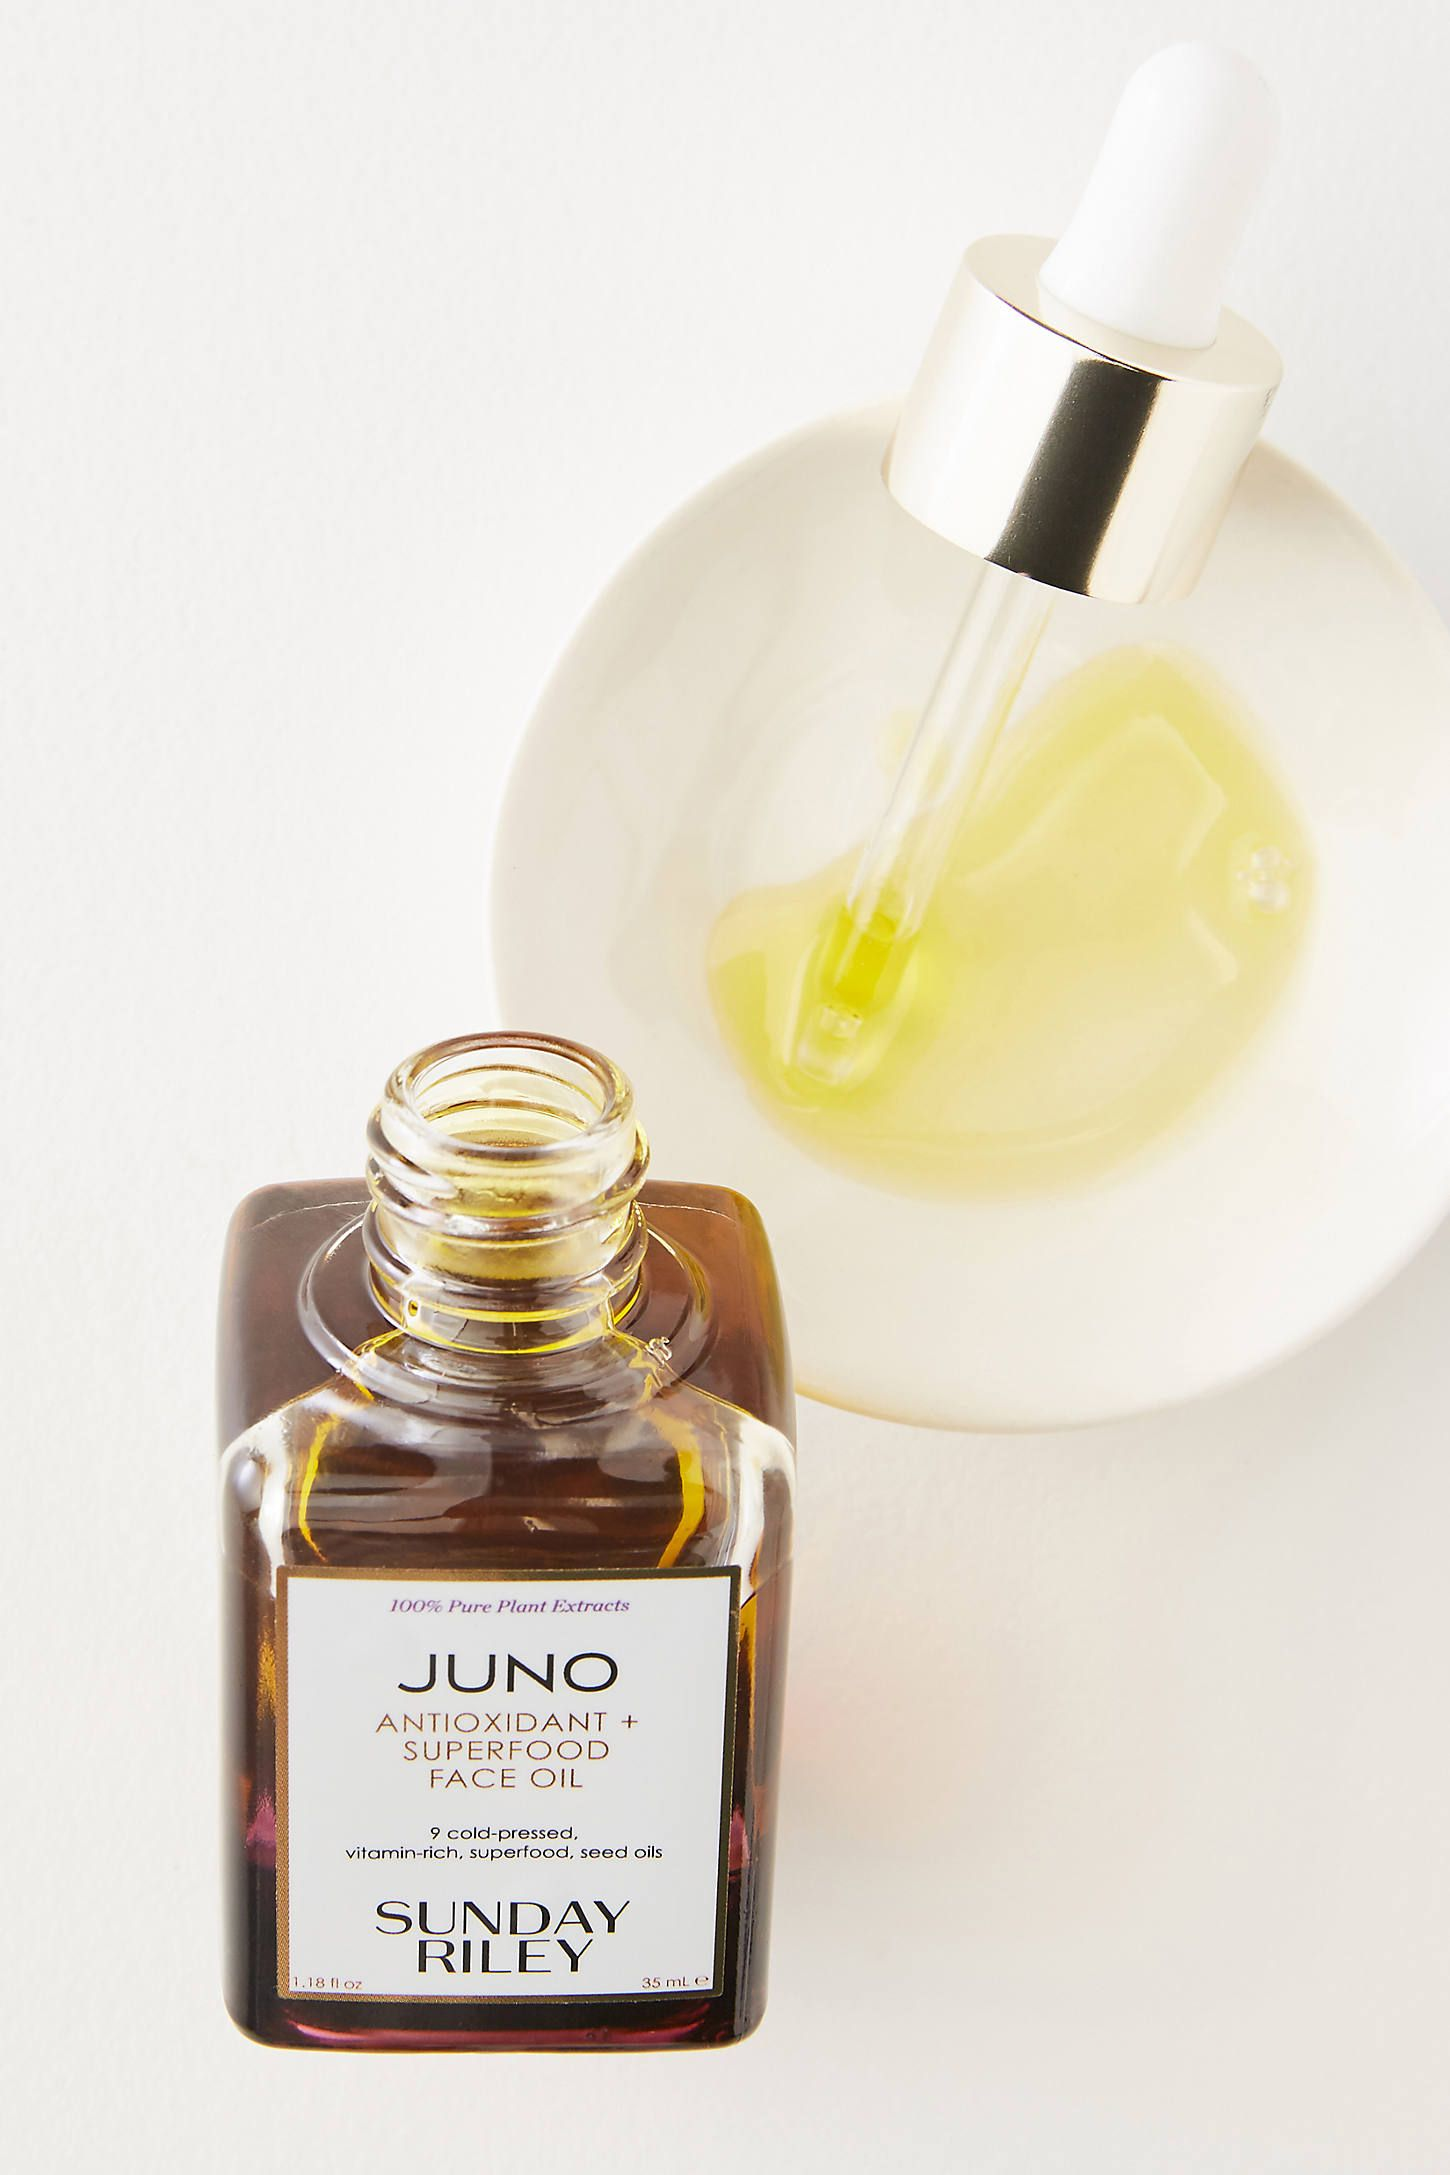 Sunday Riley Juno Antioxidant Superfood Face Oil Face Oil Homemade Hair Products Dry Oil